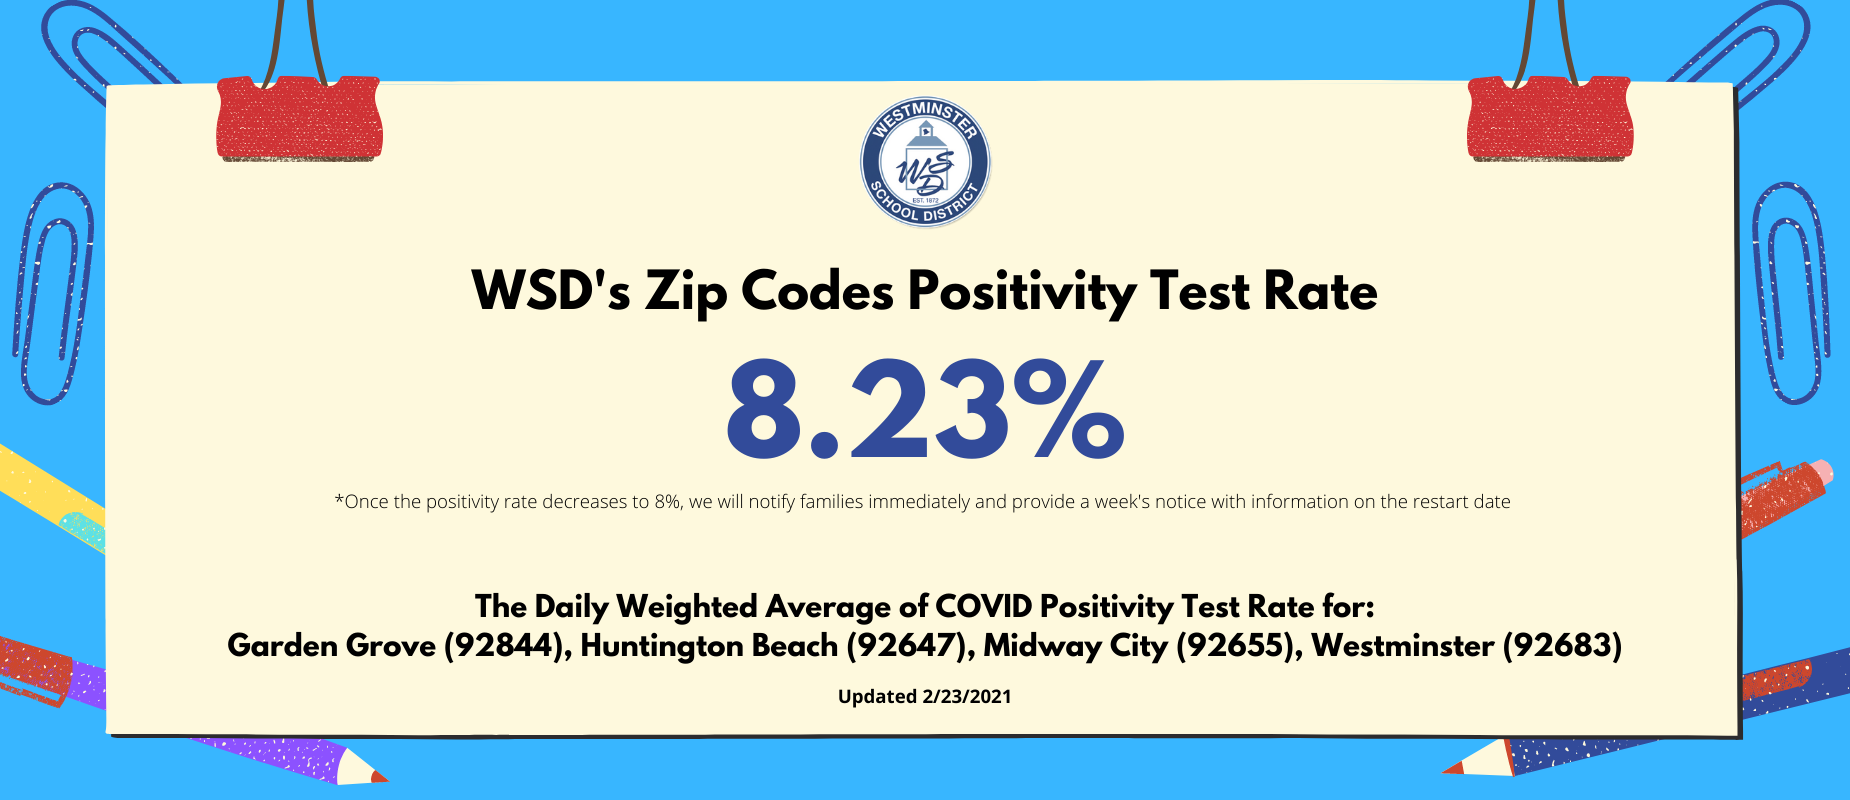 Daily Weighted Average of COVID Positivity Test Rate for 92844, 92647, 92655, and 92683.  Weighted Average for 2/23/2021 is 8.23%